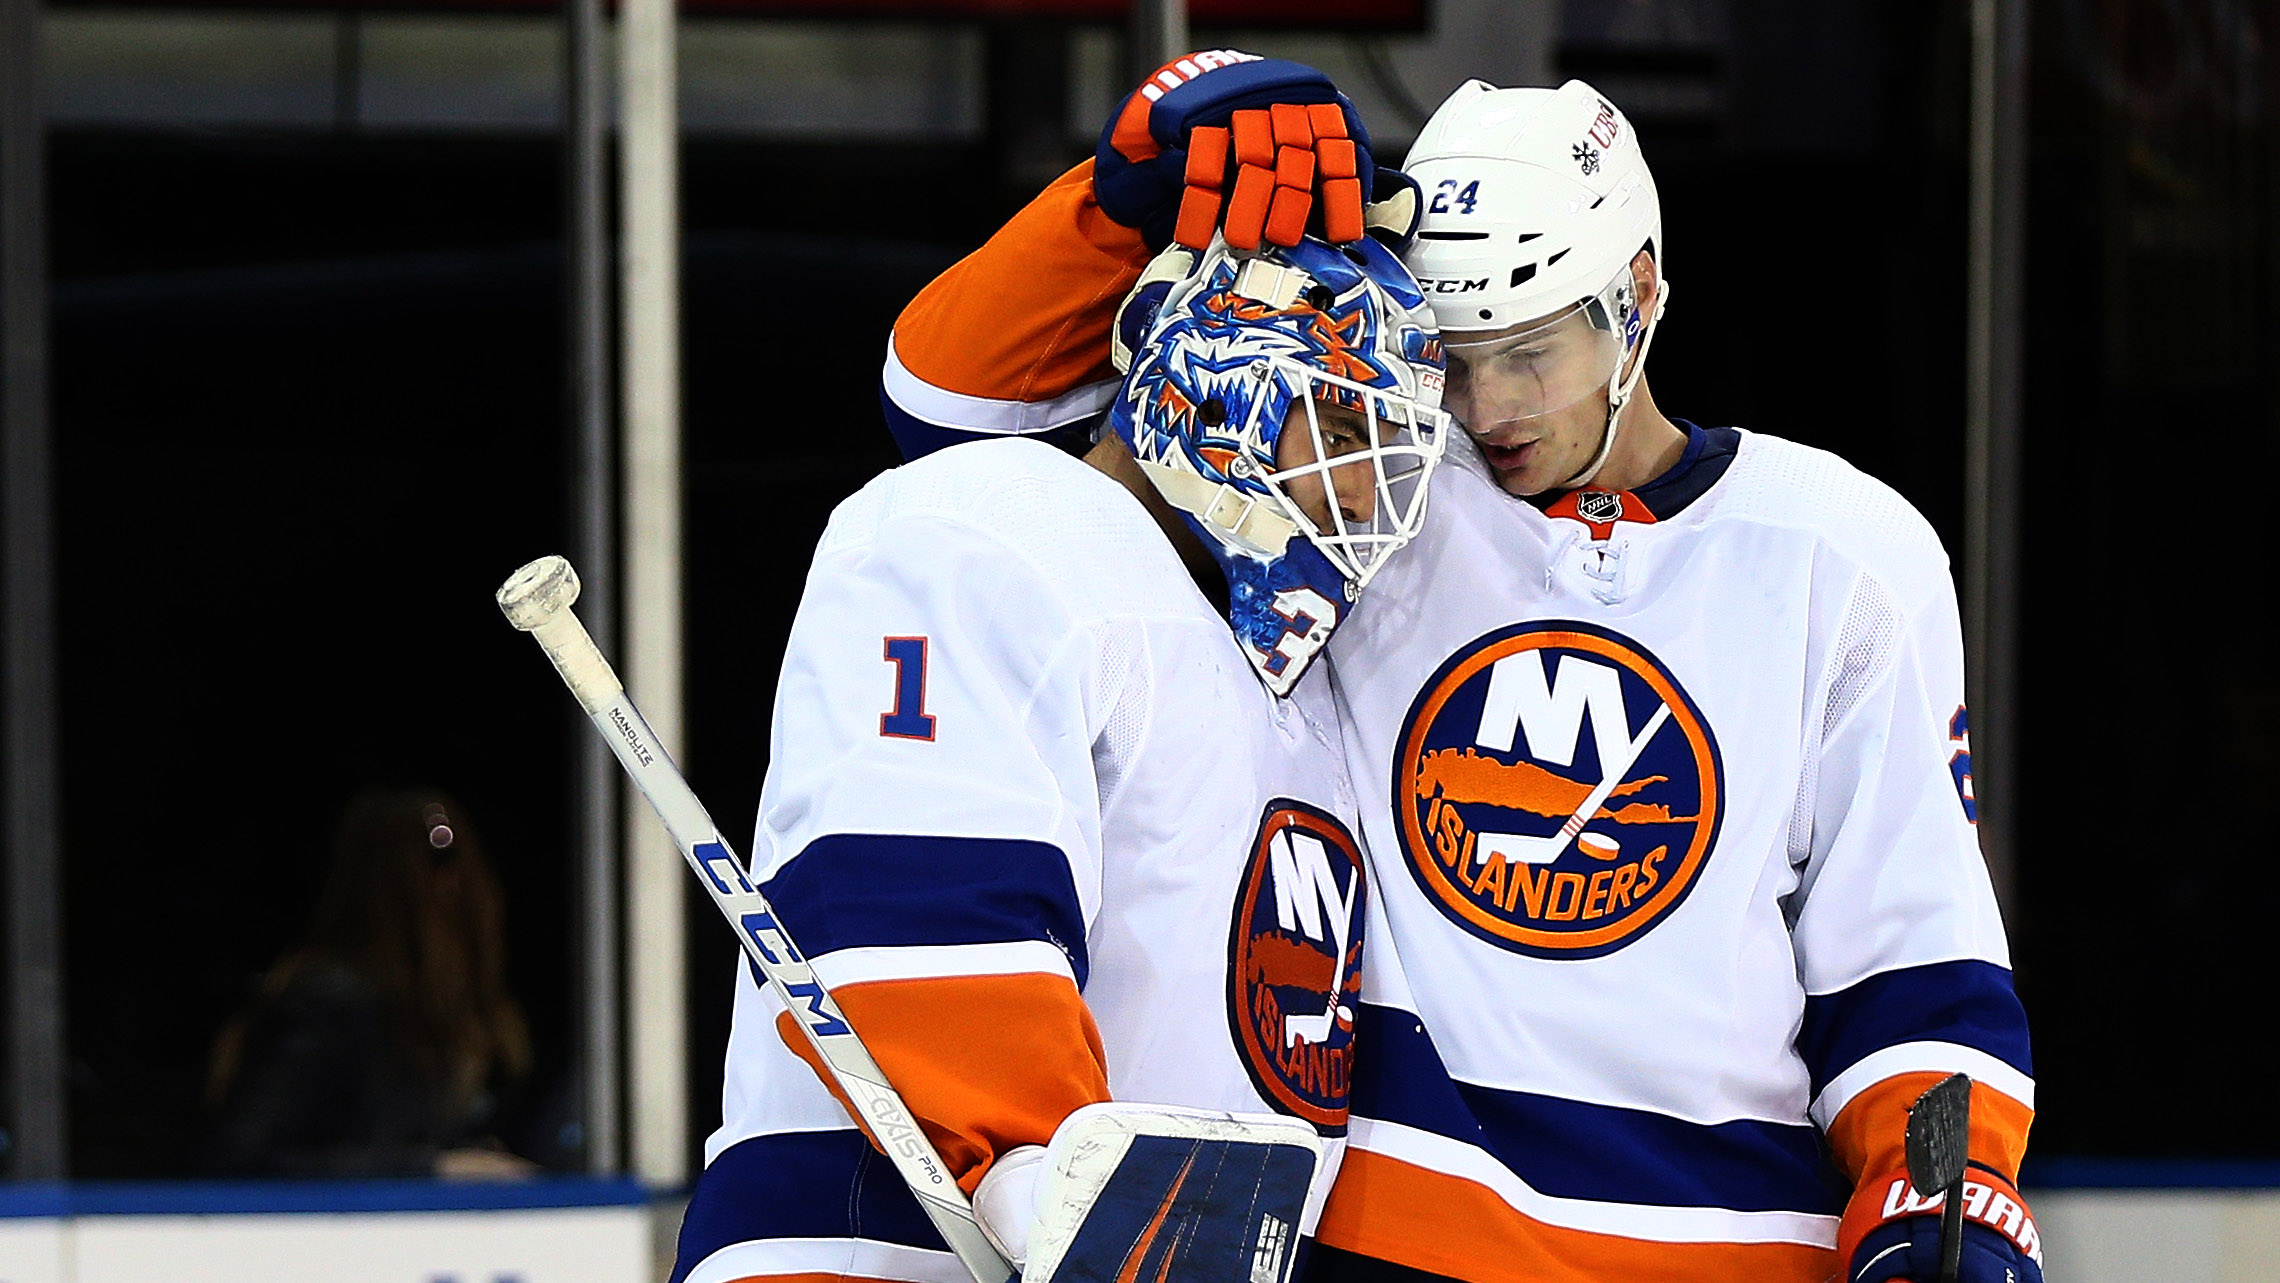 NHL 2021-22 Metropolitan Division preview: Islanders look to extend playoff run